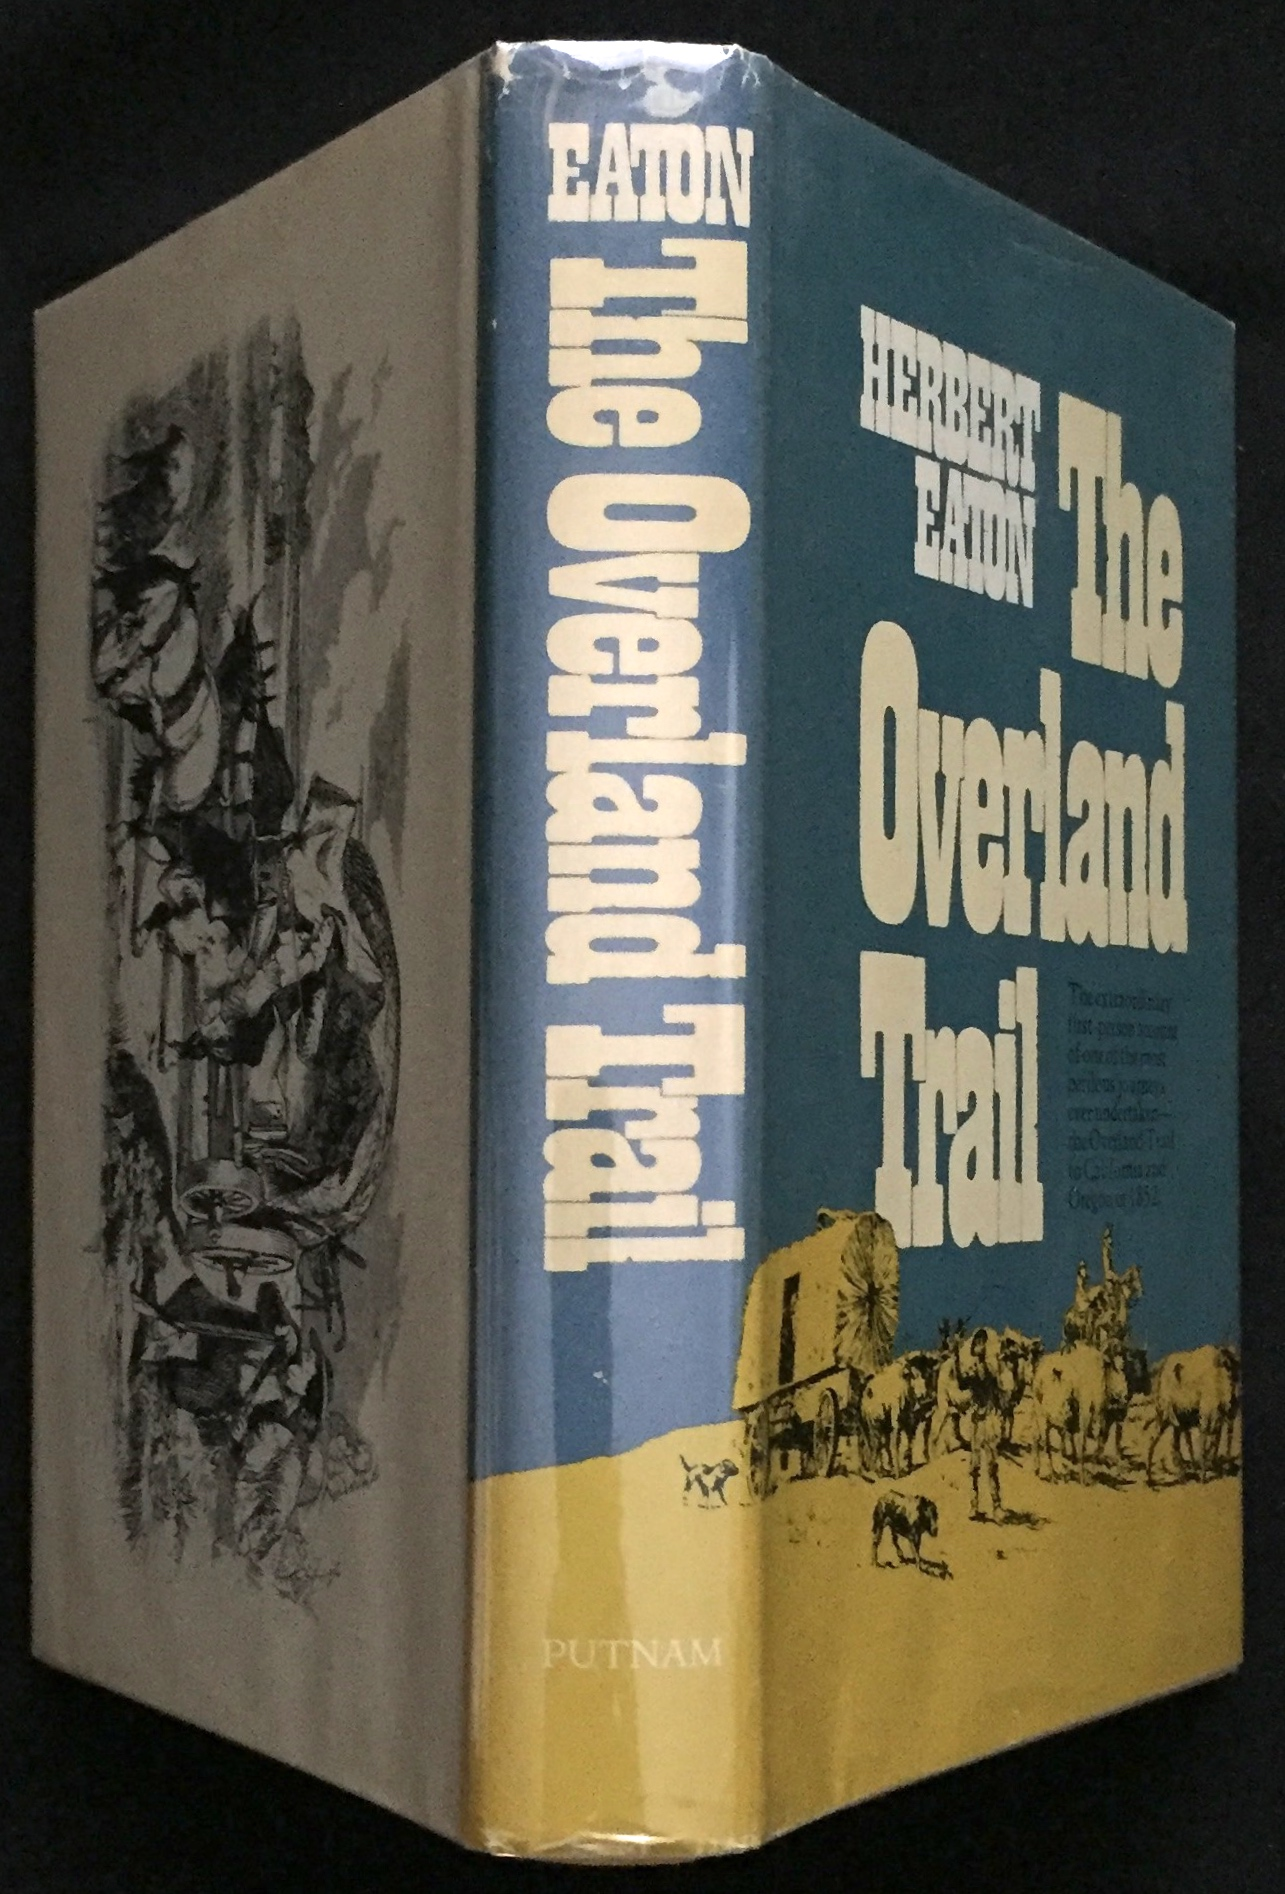 THE OVERLAND TRAIL by Herbert Eaton on Borg Antiquarian